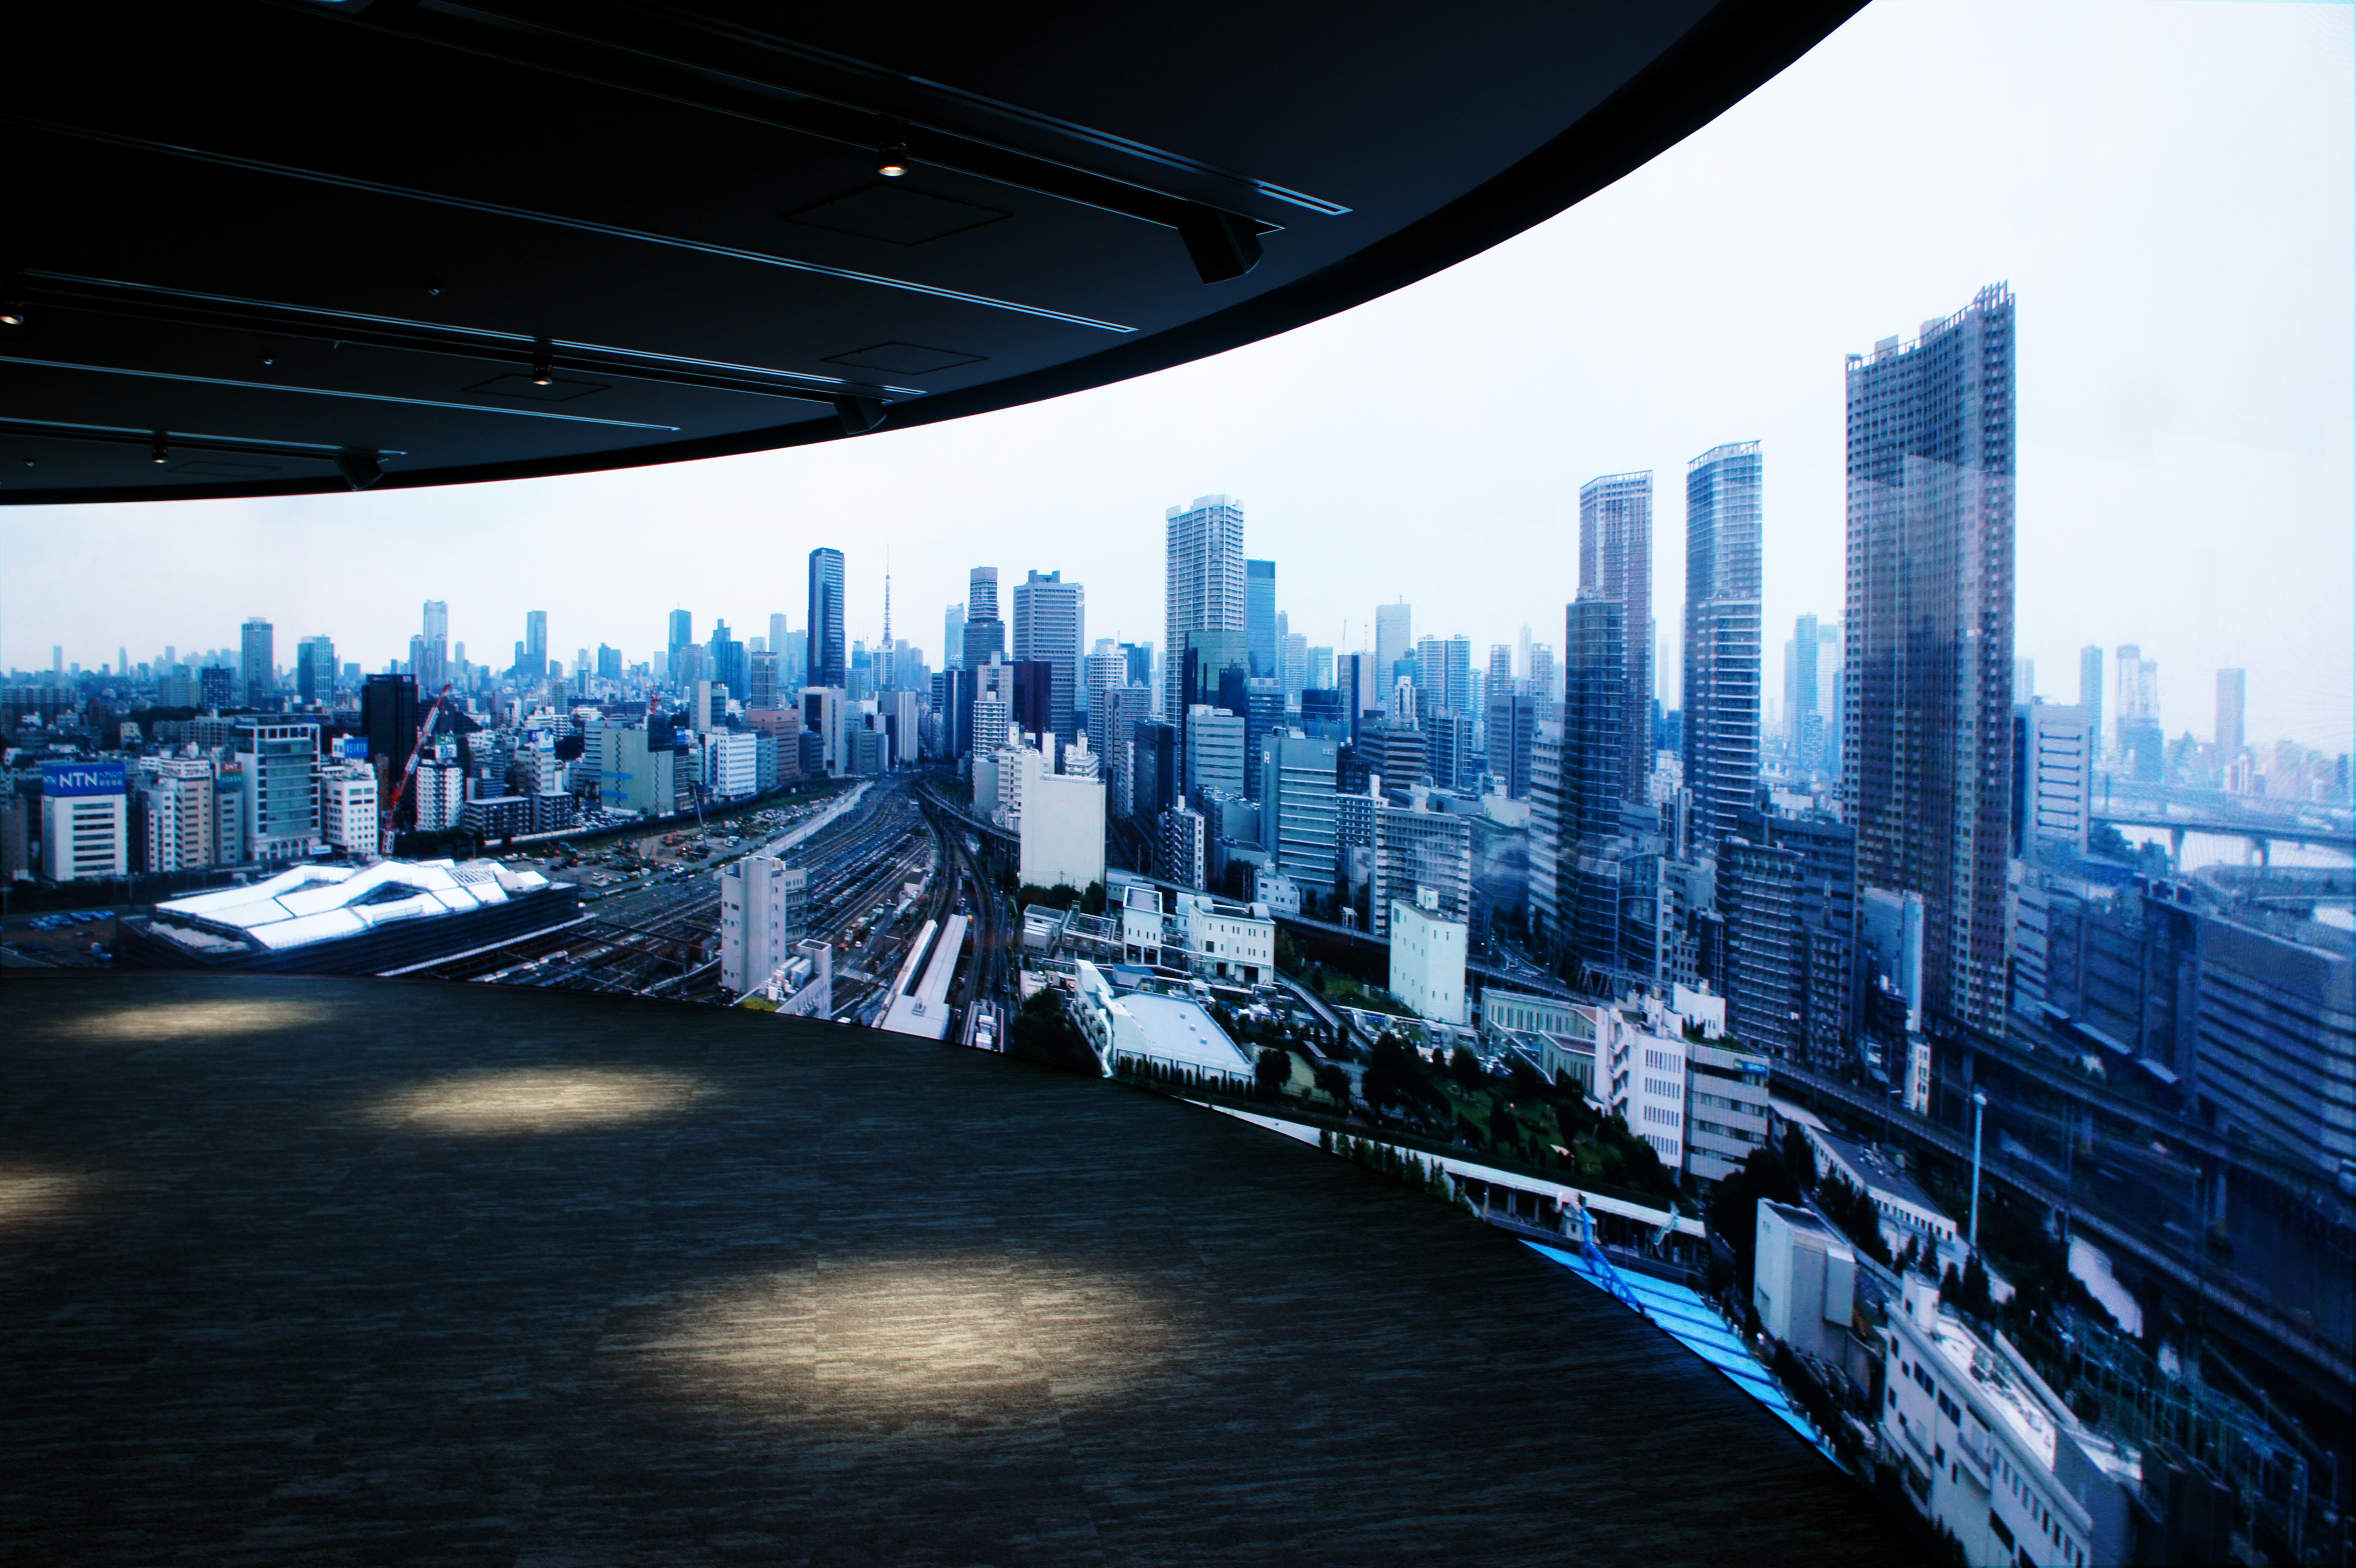 Sony delivers Crystal LED display system to NTT DOCOMO